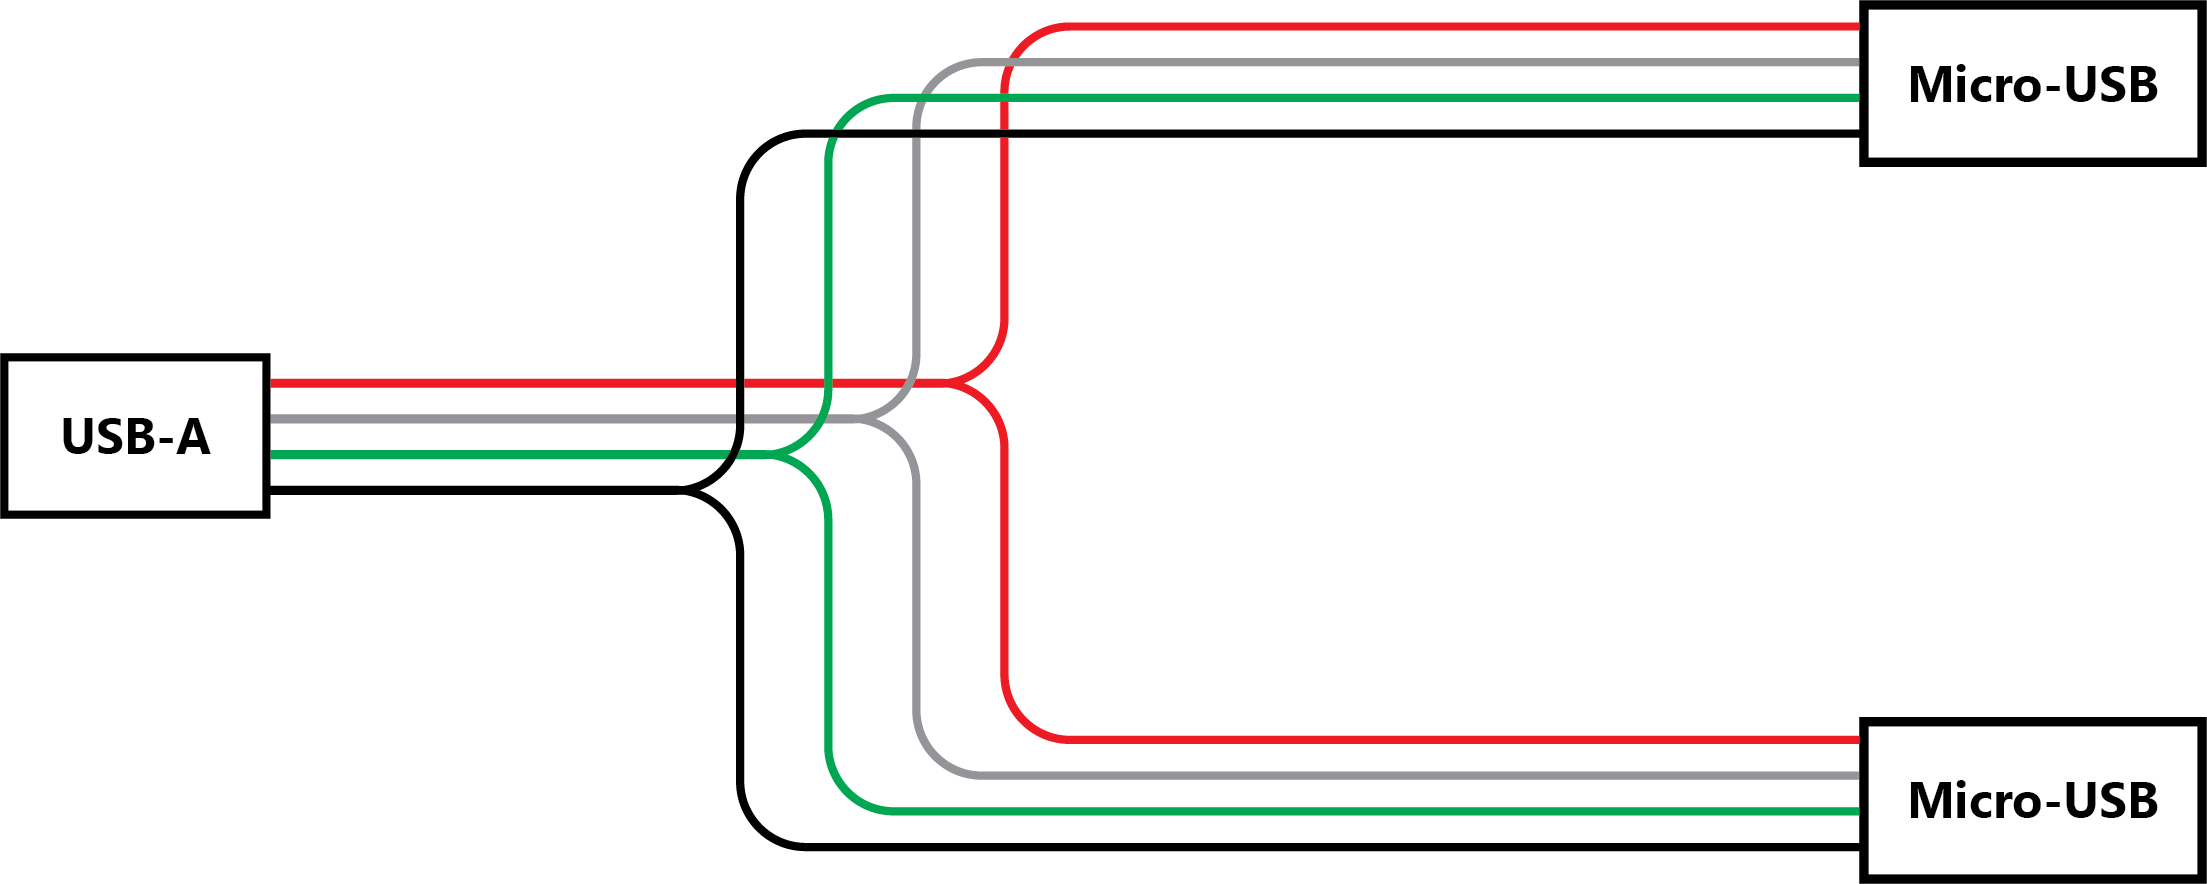 Wiring Diagram For Split Micro-Usb Cable? - Electrical Engineering - Usb Web Camera Wiring Diagram